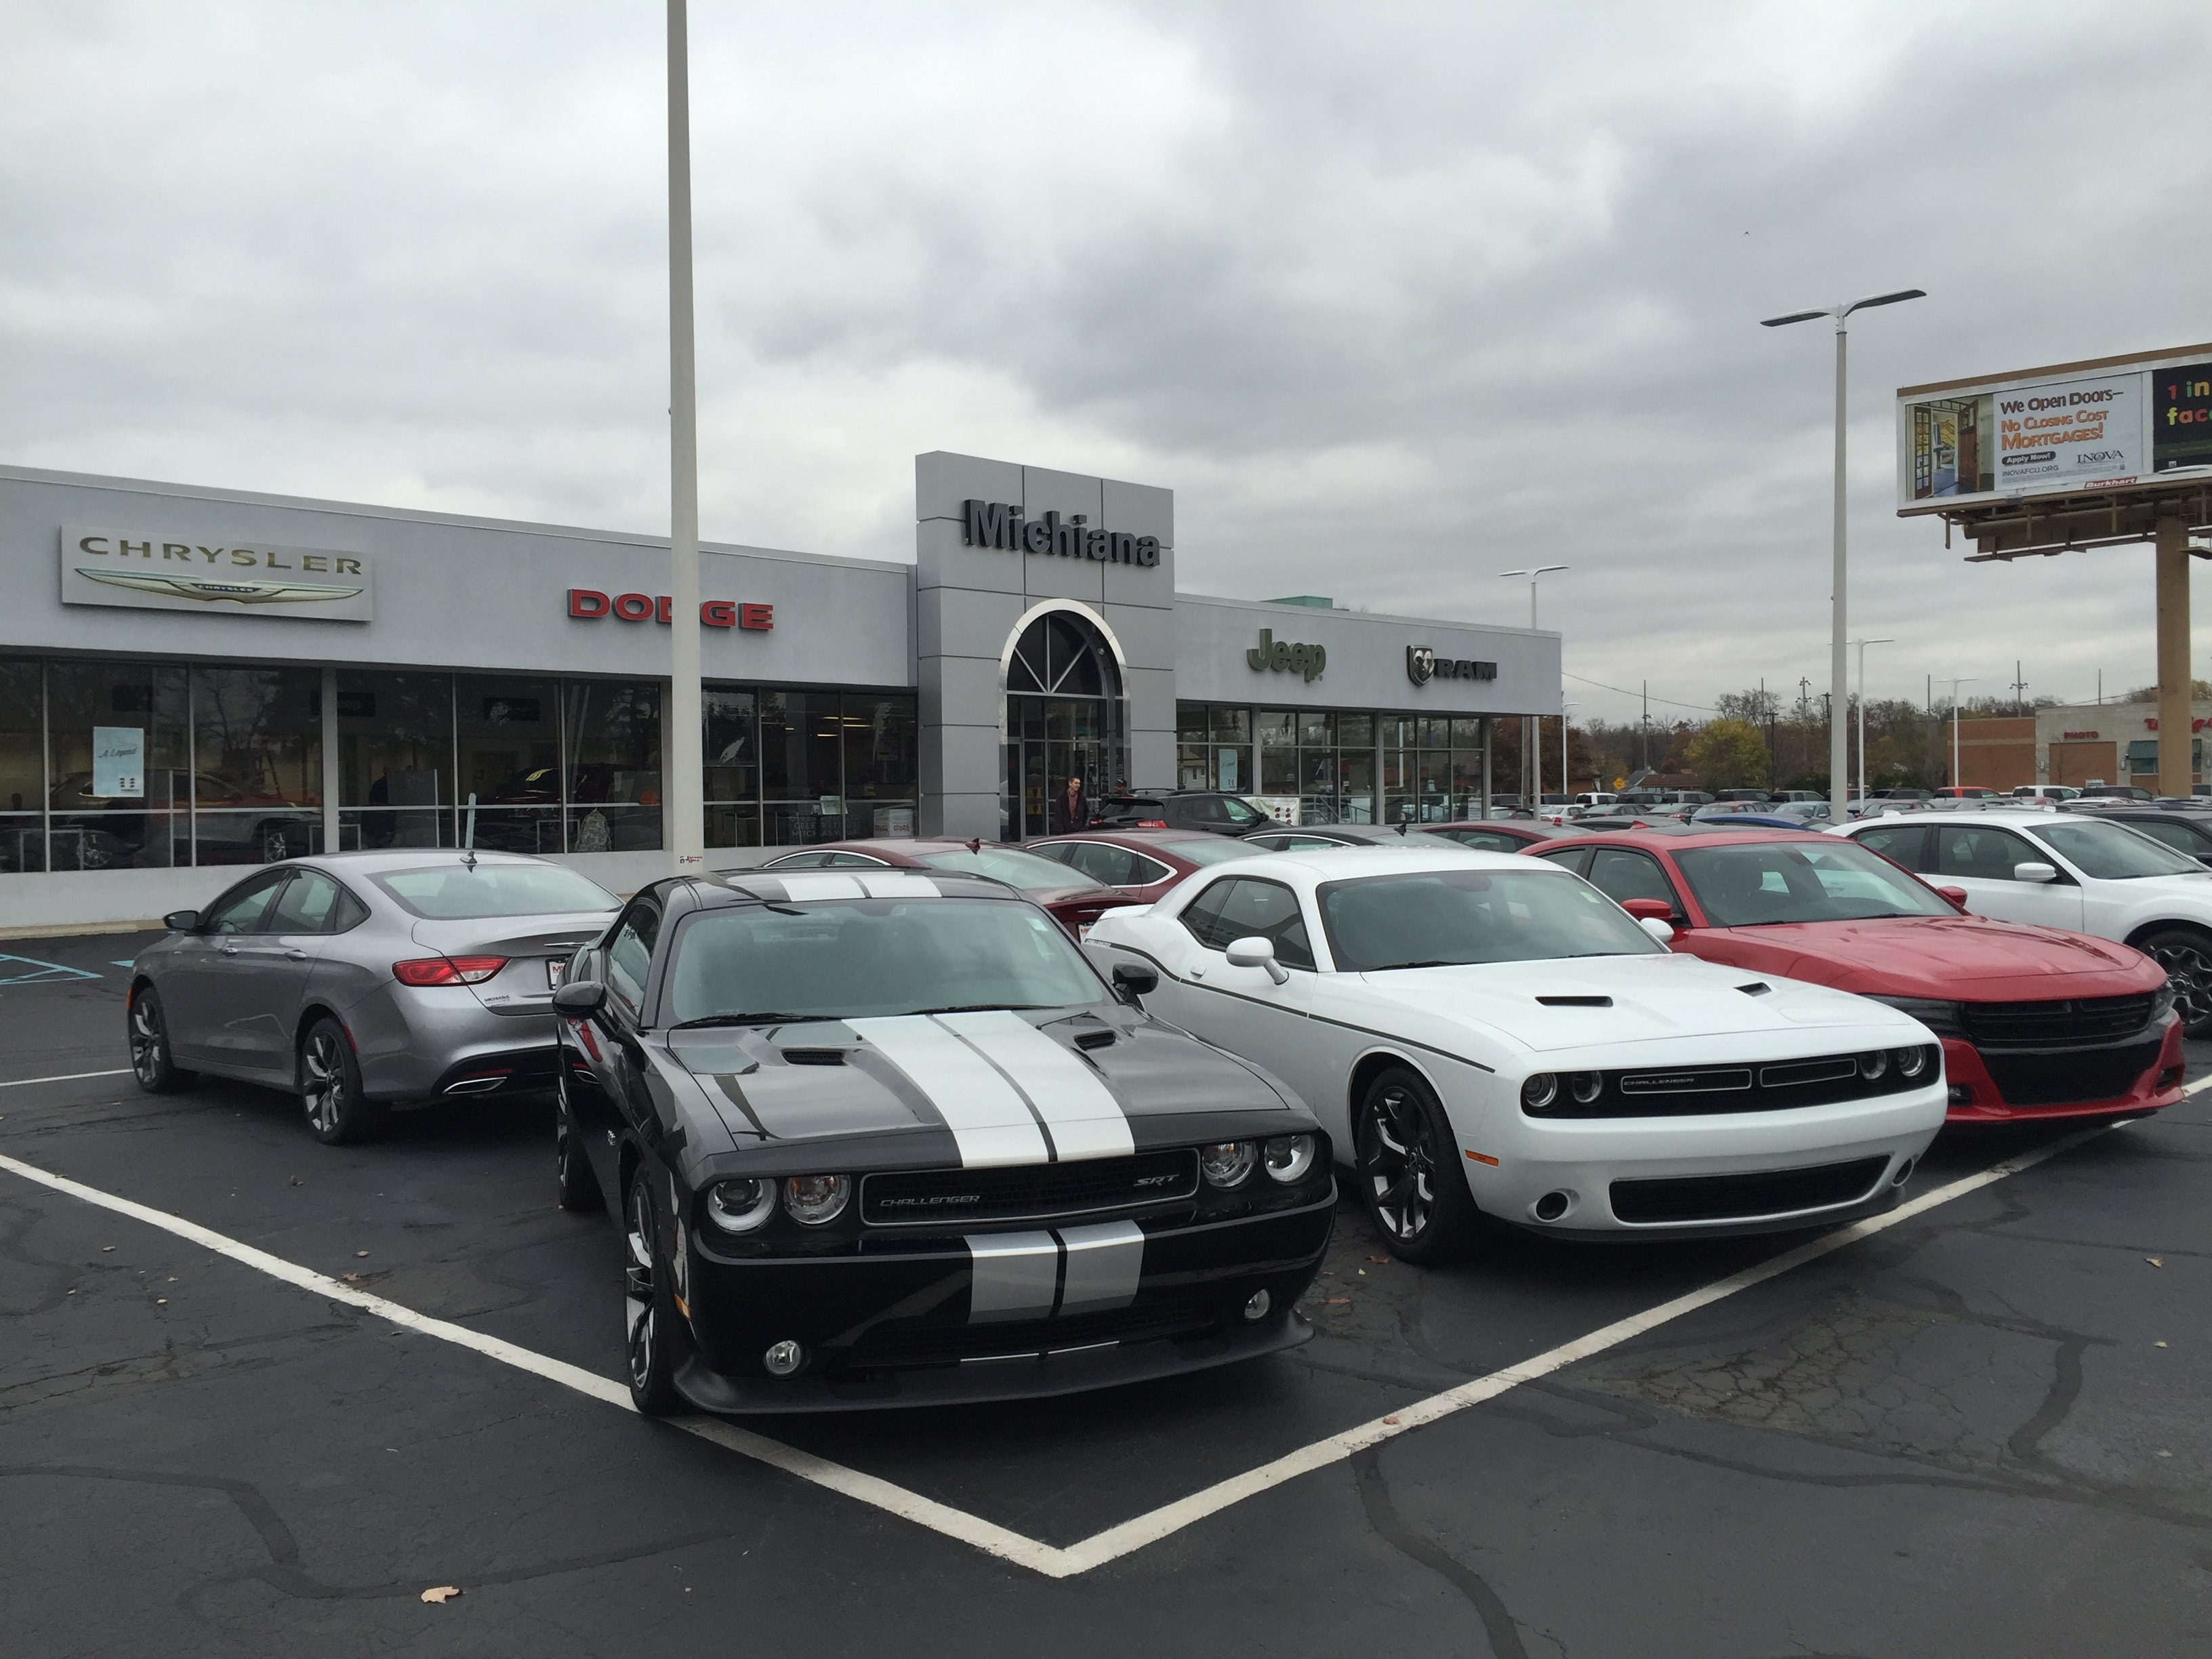 body dealership motors rentals st city joseph shop used new service chrysler vehicles car mi